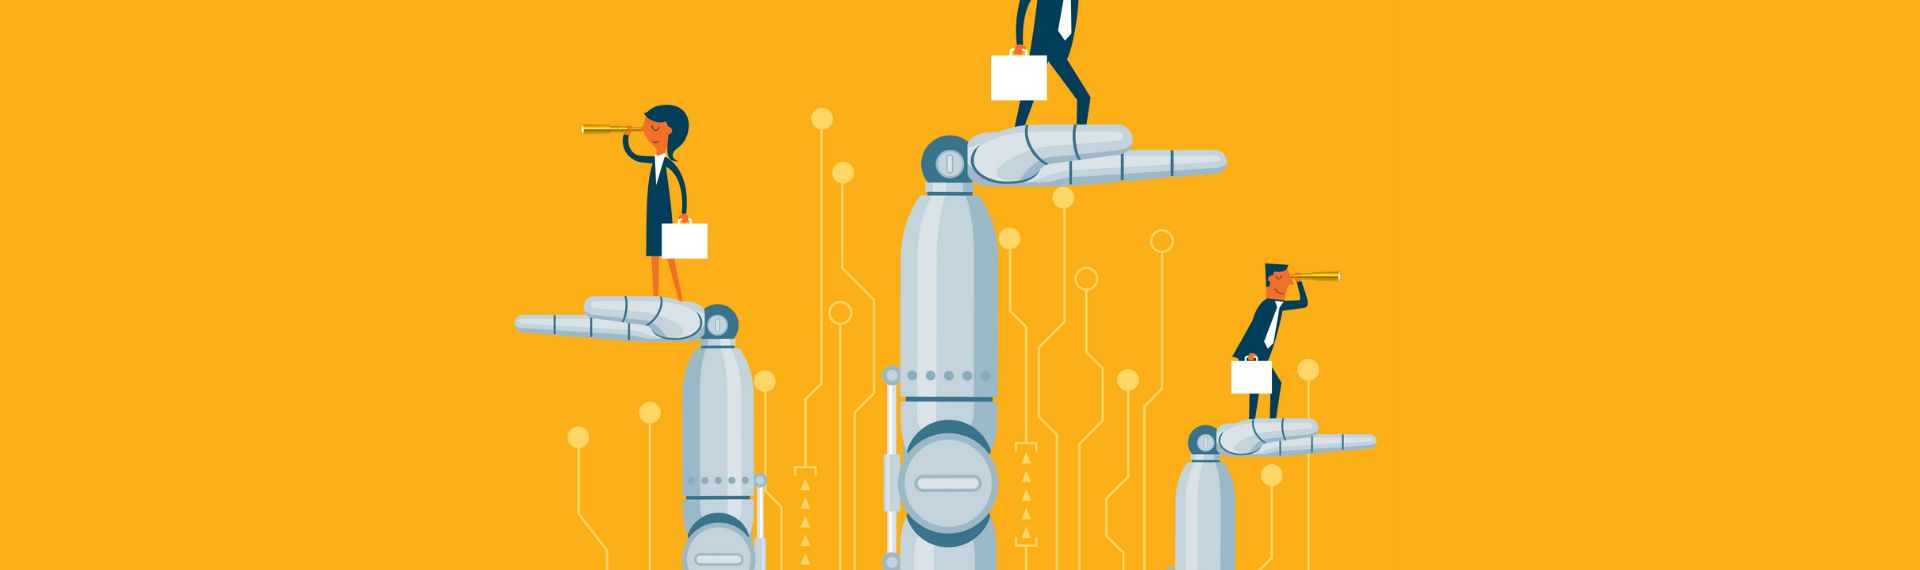 How artificial intelligence can make high quality care more affordable